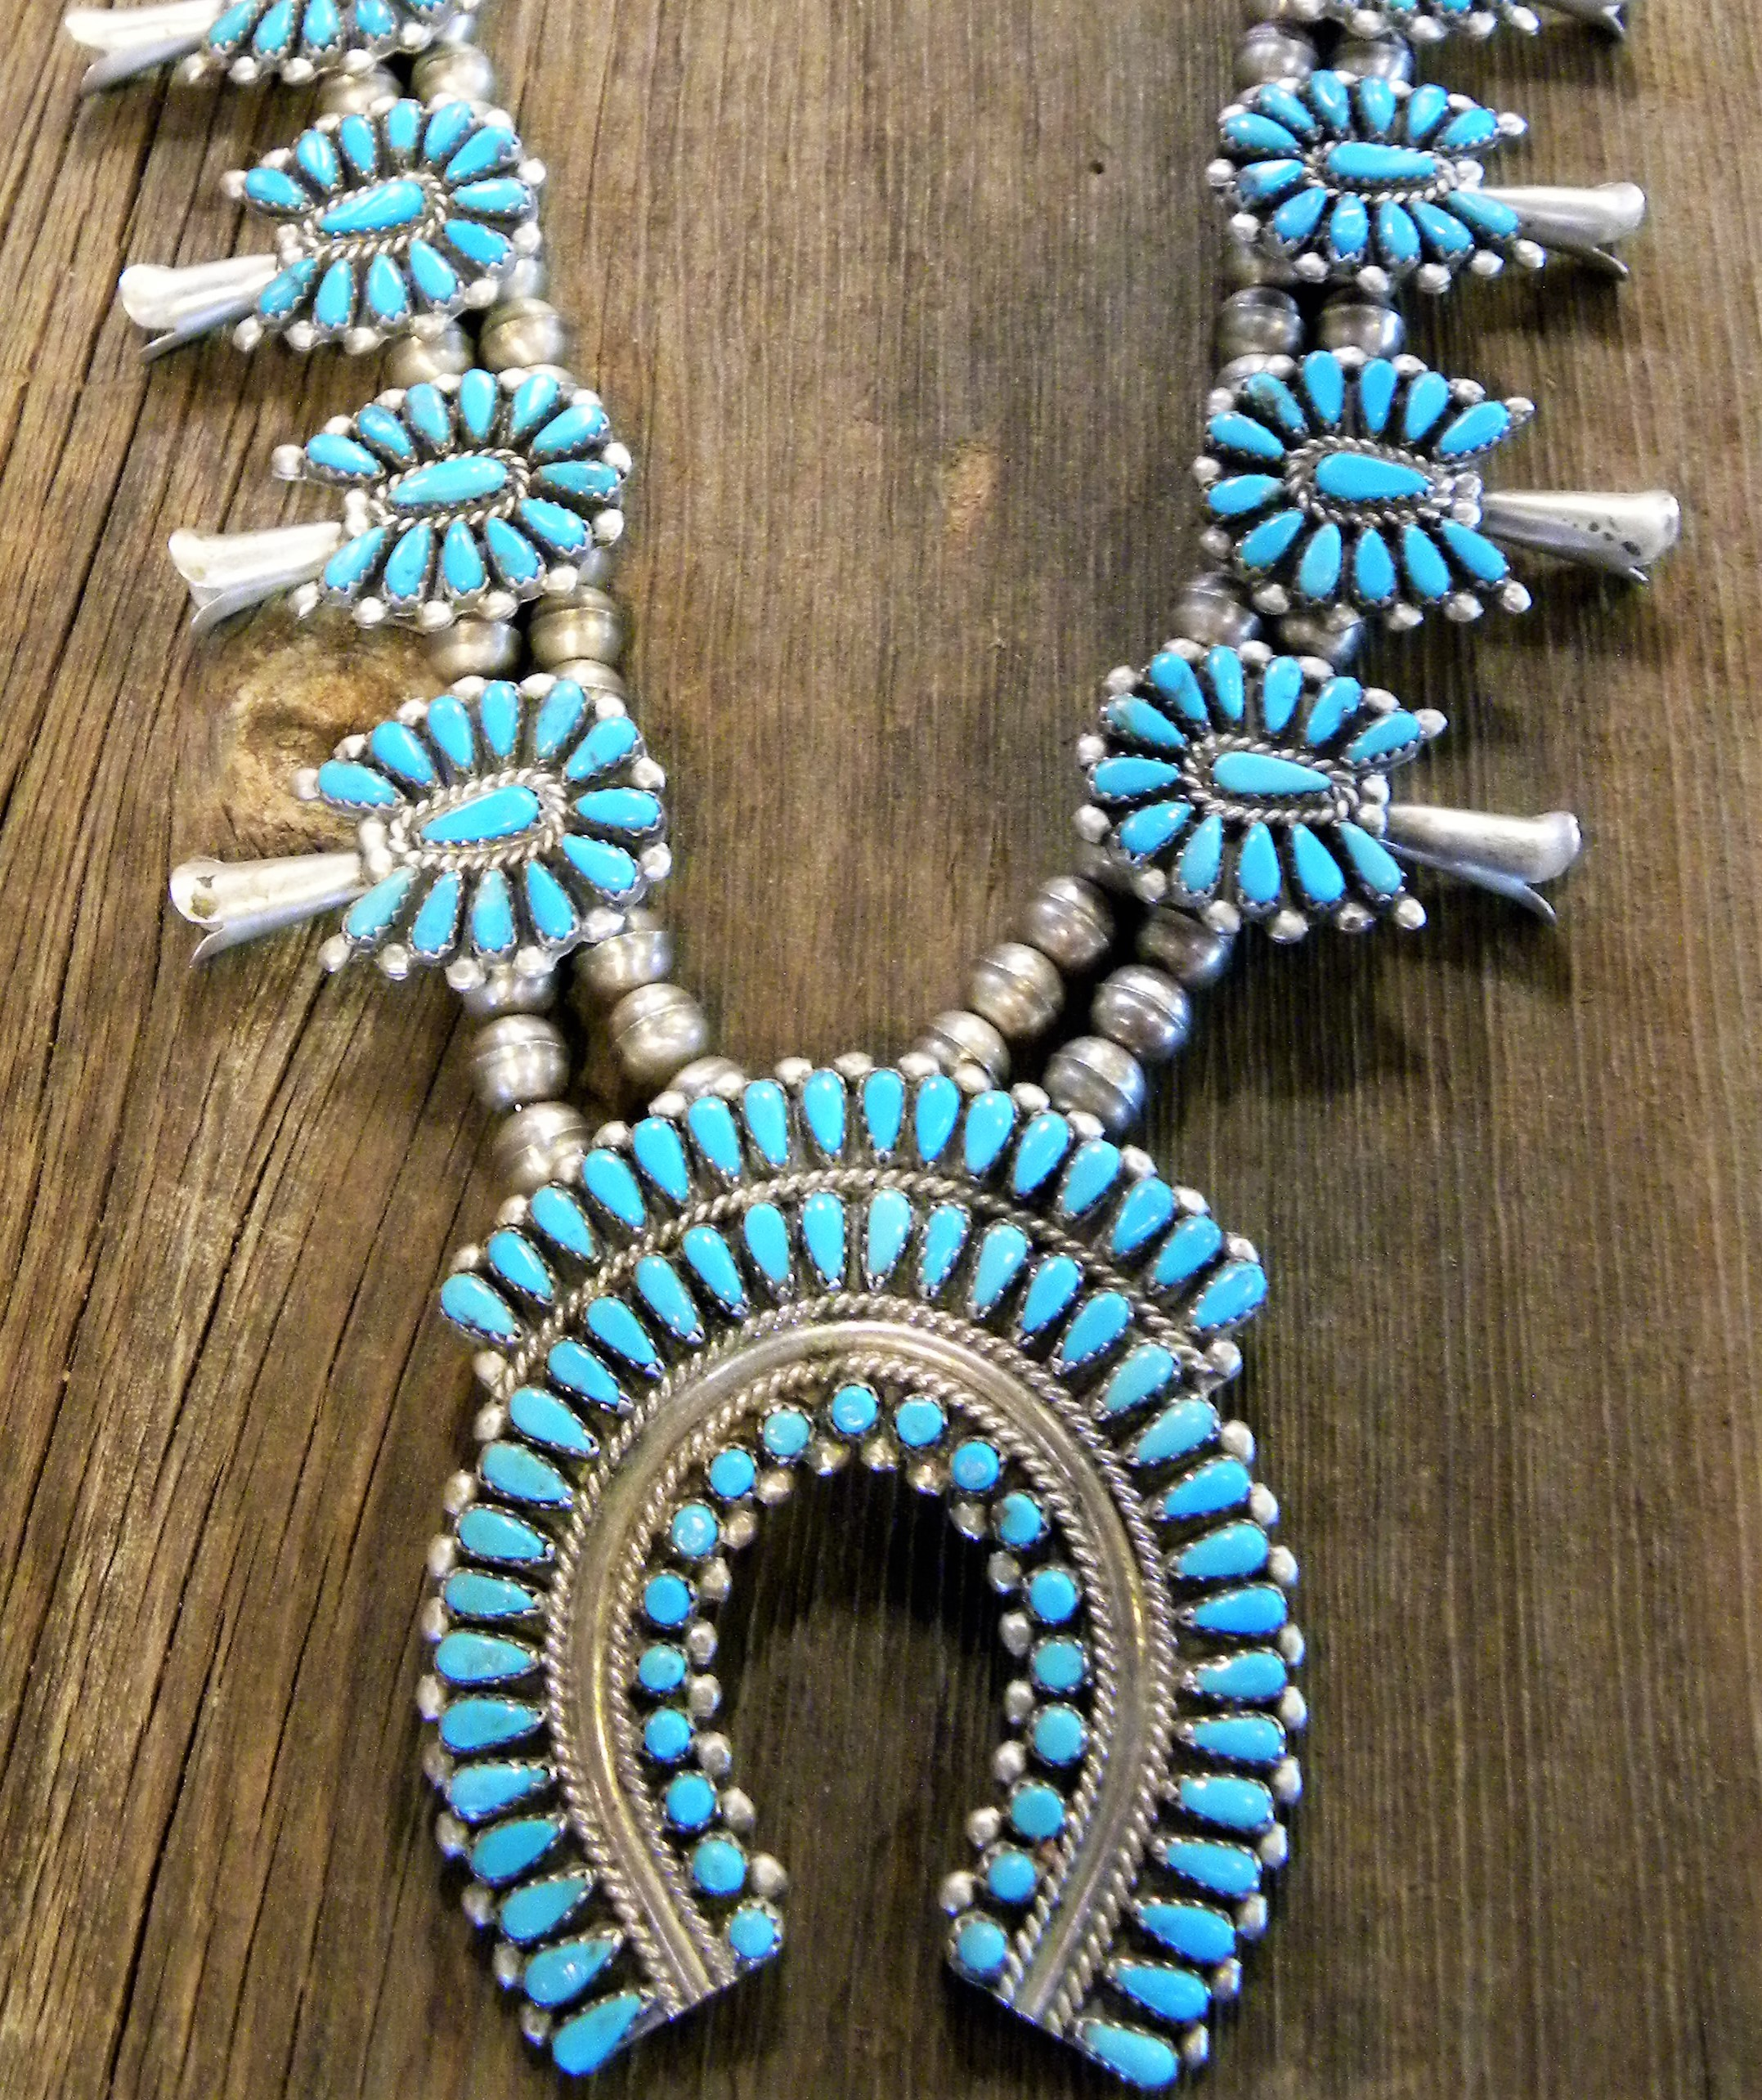 SBN13 Pawn Sleeping Beauty Turquoise Squash Blossom Necklace